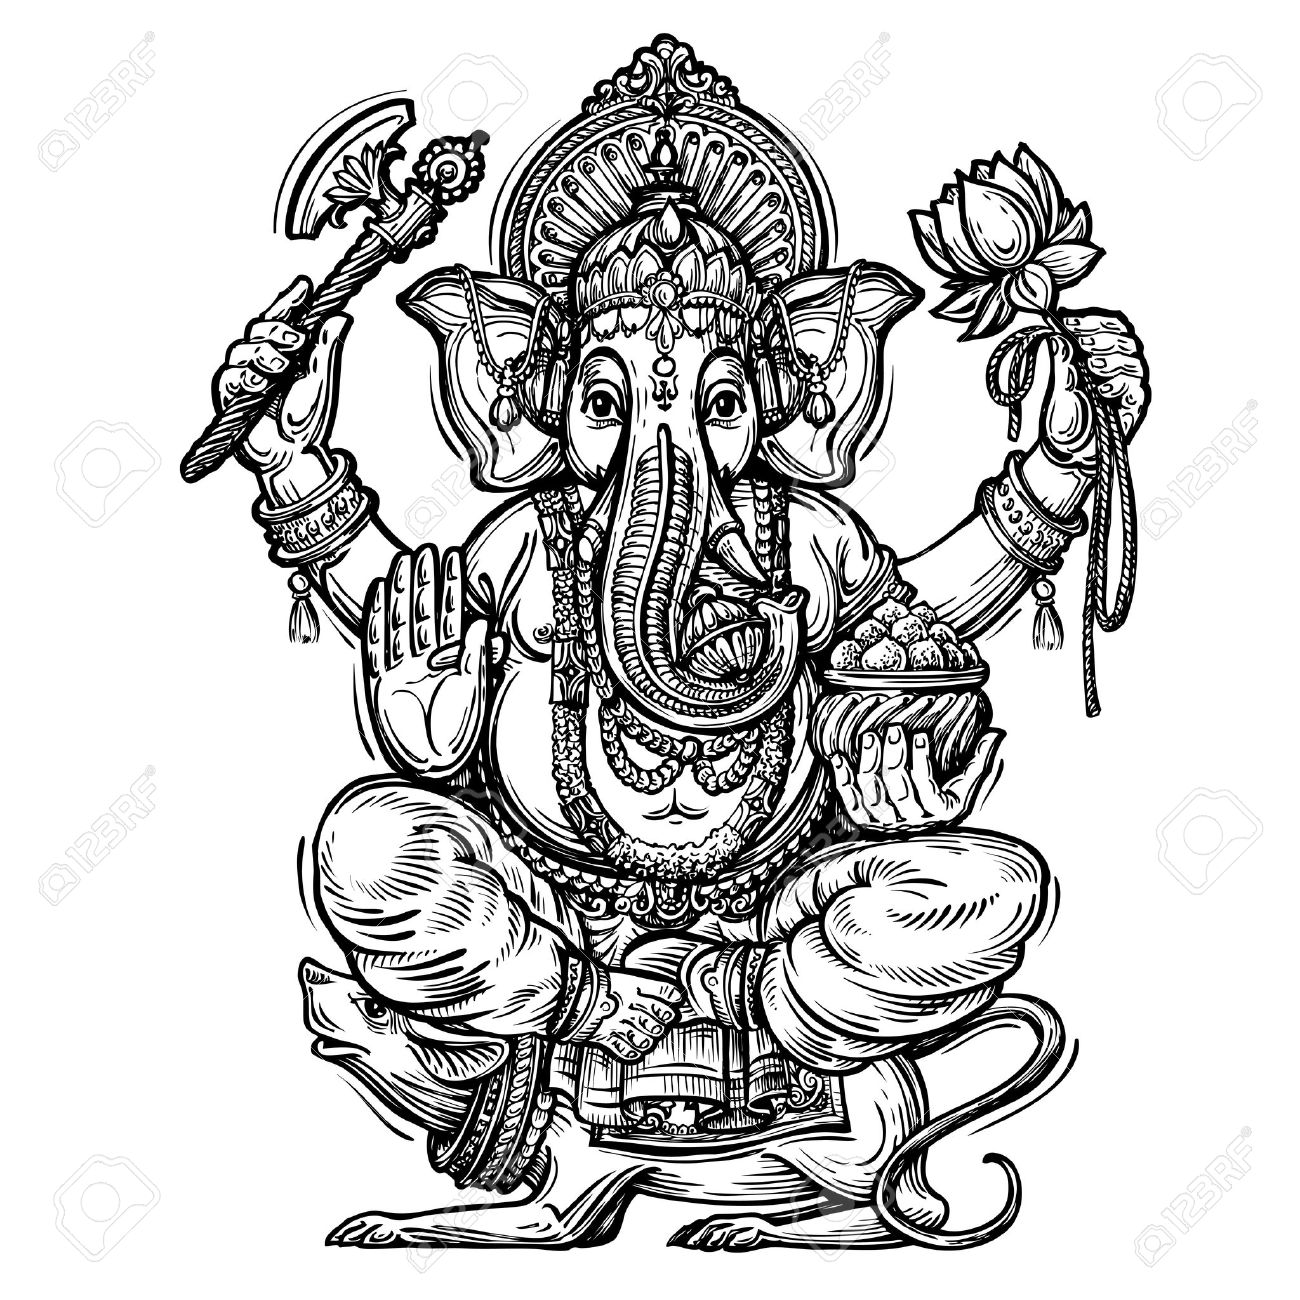 Hand drawn sketch vector illustration ganesh chaturthi stock vector 55349014